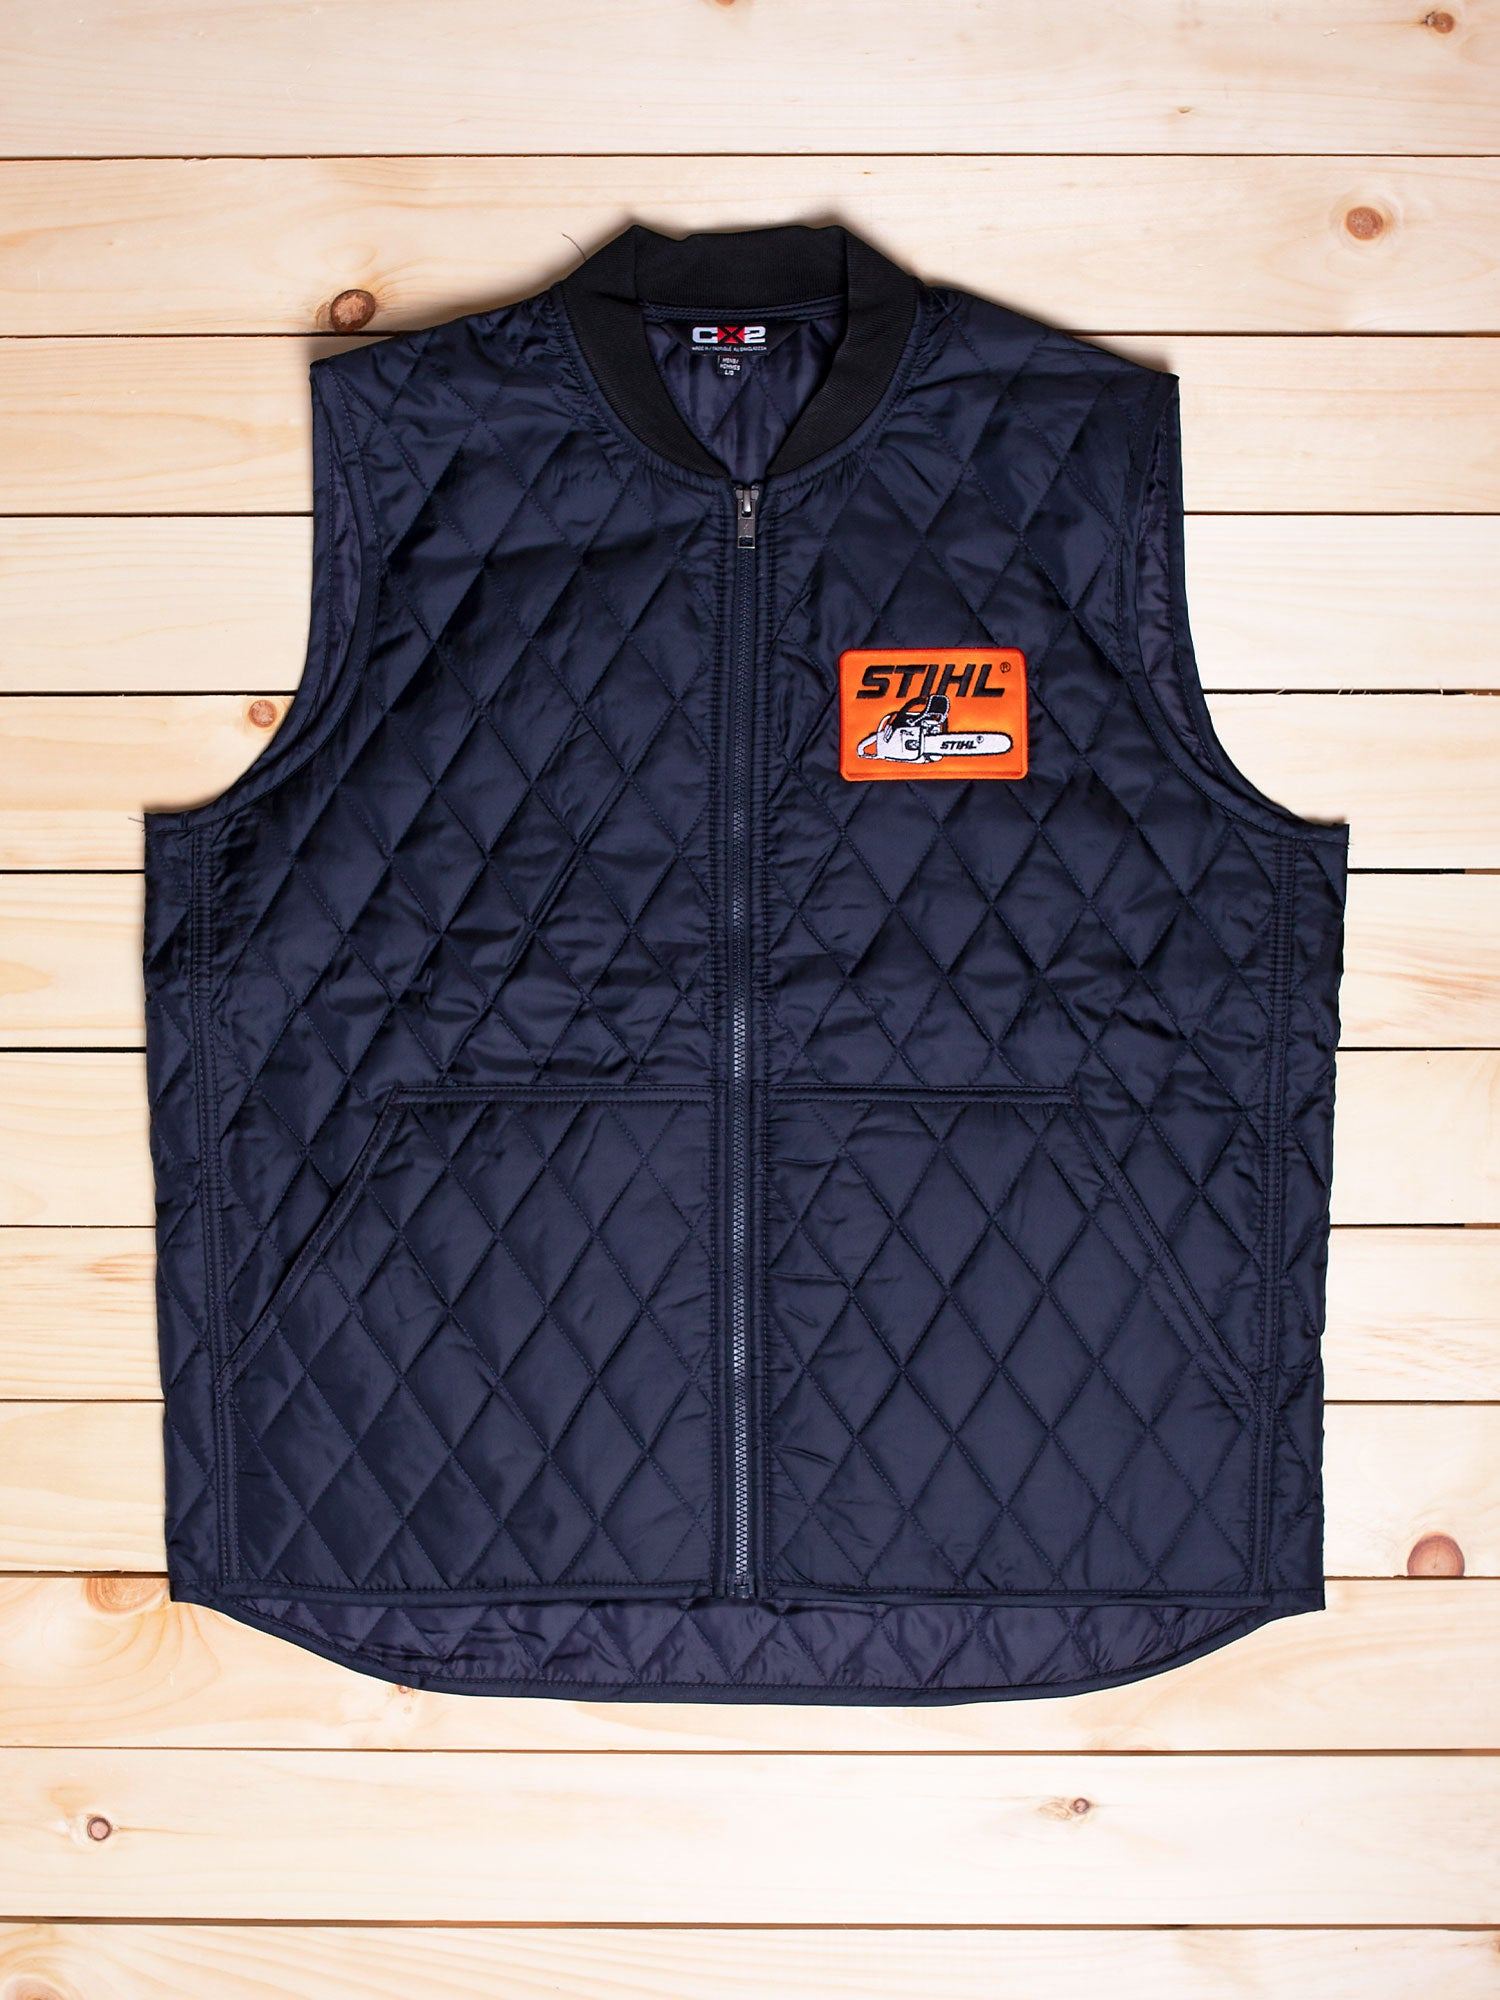 STIHL Quilted Vest